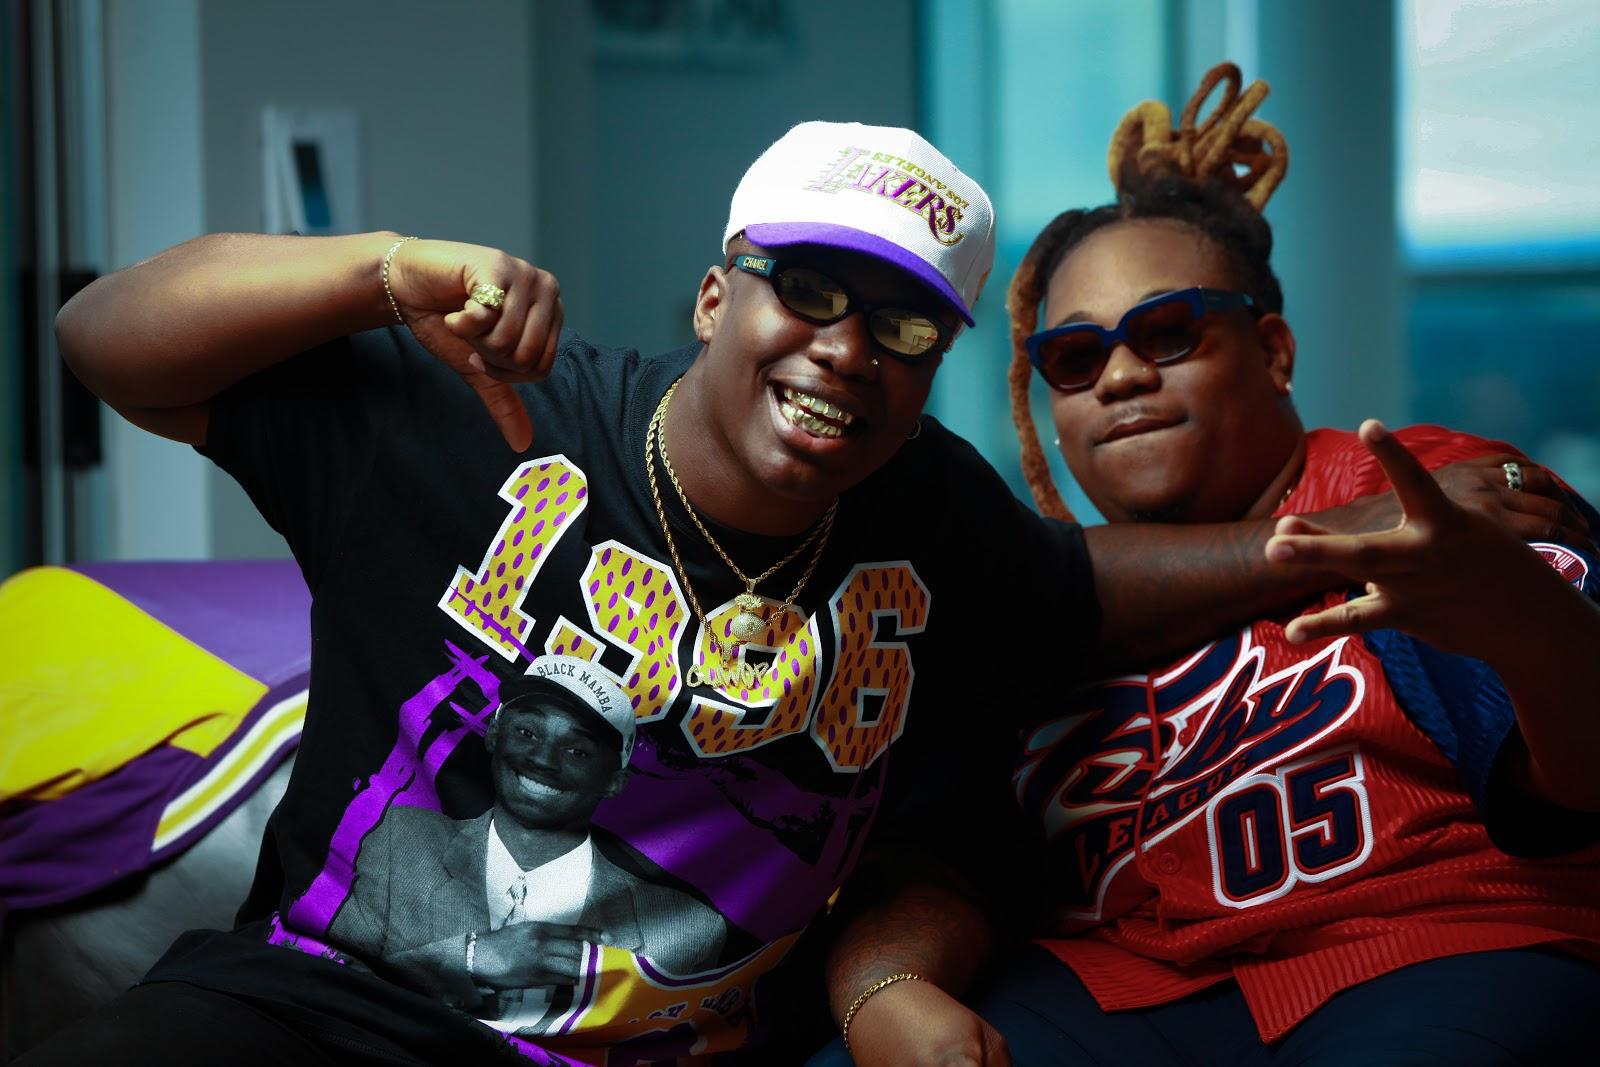 """300LBS of Guwop Shares Visuals for """"Good Times"""""""